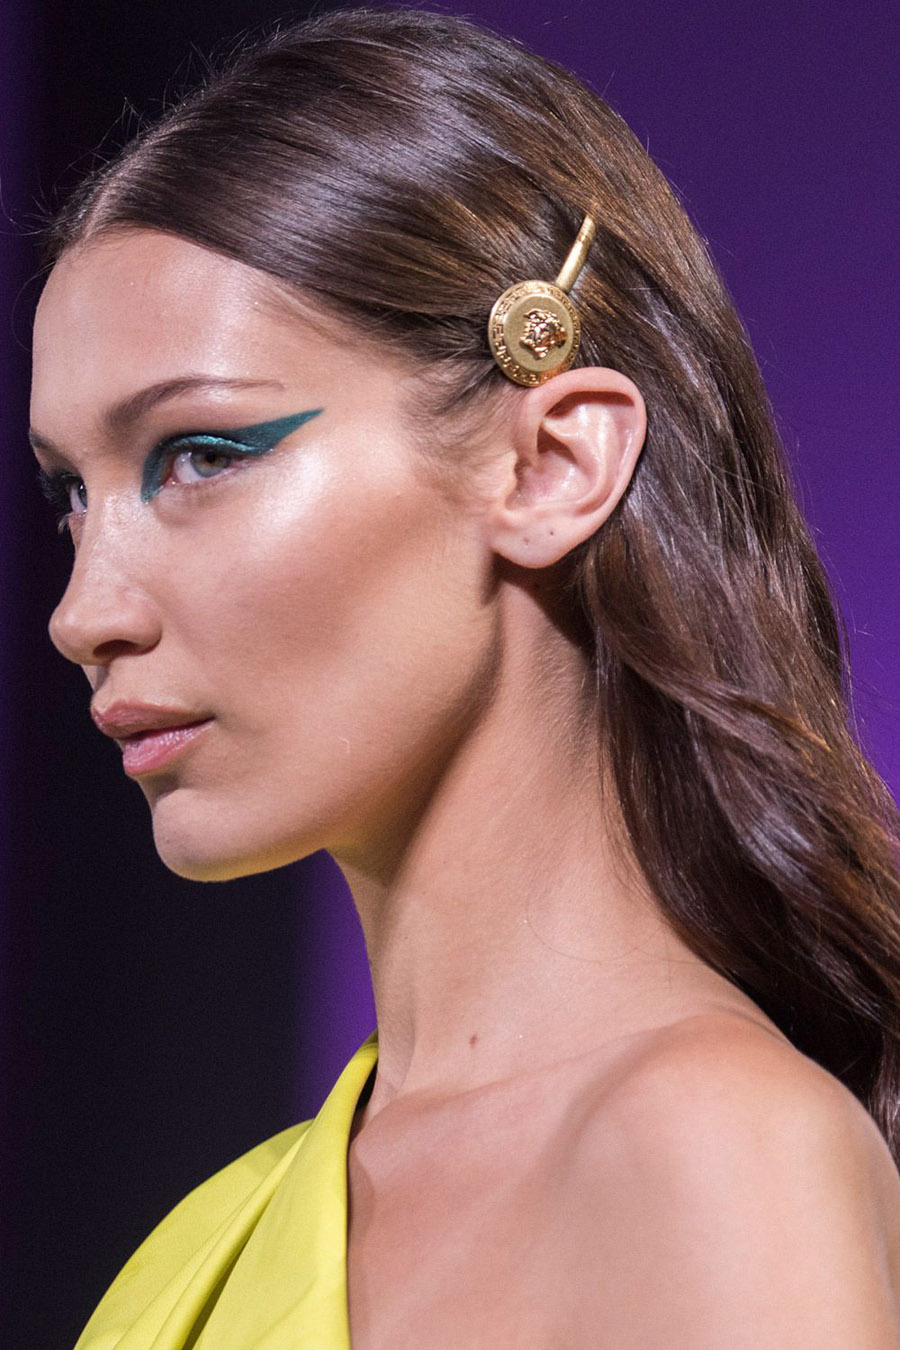 spring-summer-2019-hair-trends-accessories-versace-imax-1539006210